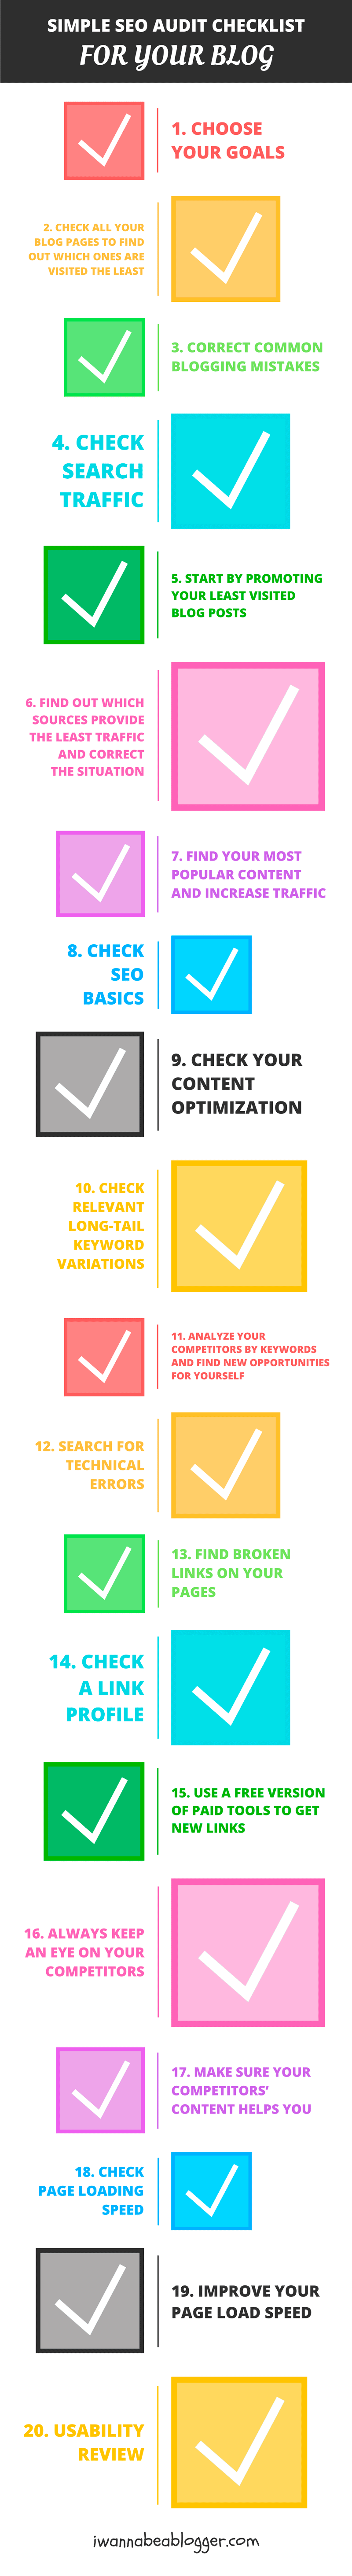 Get the simple SEO Audit checklist for your blog [Infographic] via @michaelpozdnev